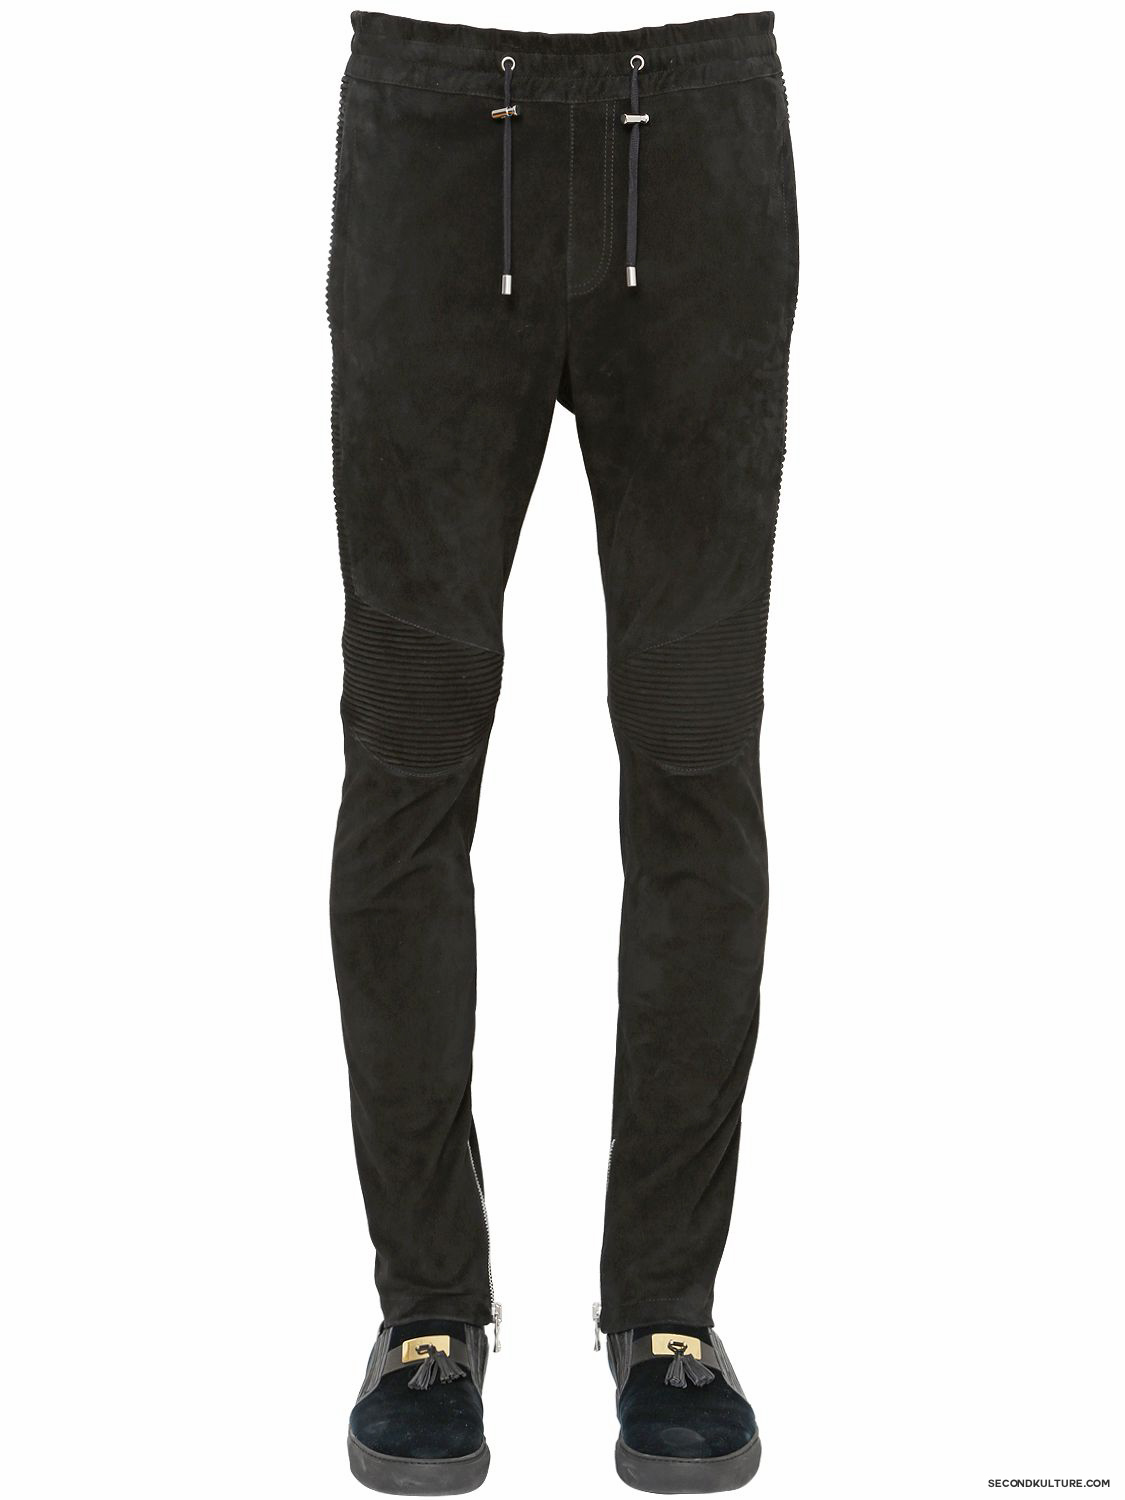 Balmain-Black-Suede-Biker-Sweatpants-Fall-Winter-2015-1